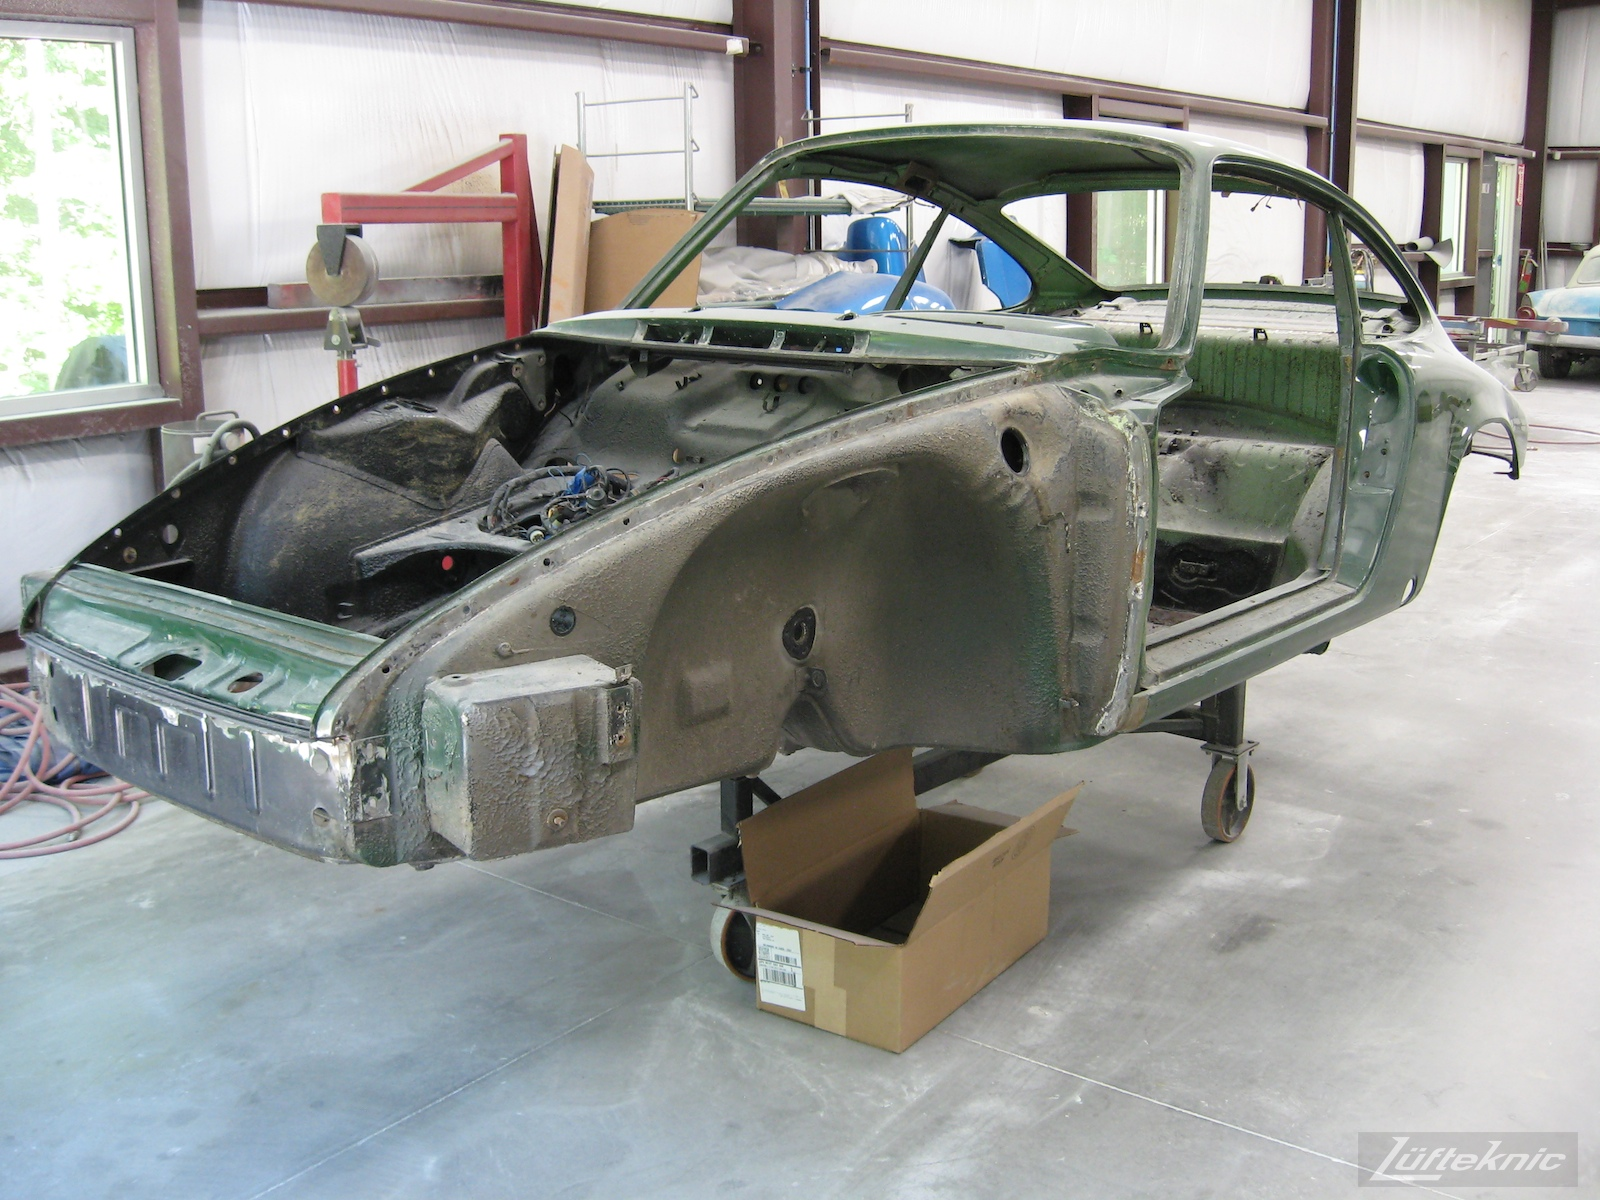 Body shell on a rack ready for sanding and refinishing of an Irish Green Porsche 912 undergoing restoration at Lufteknic.